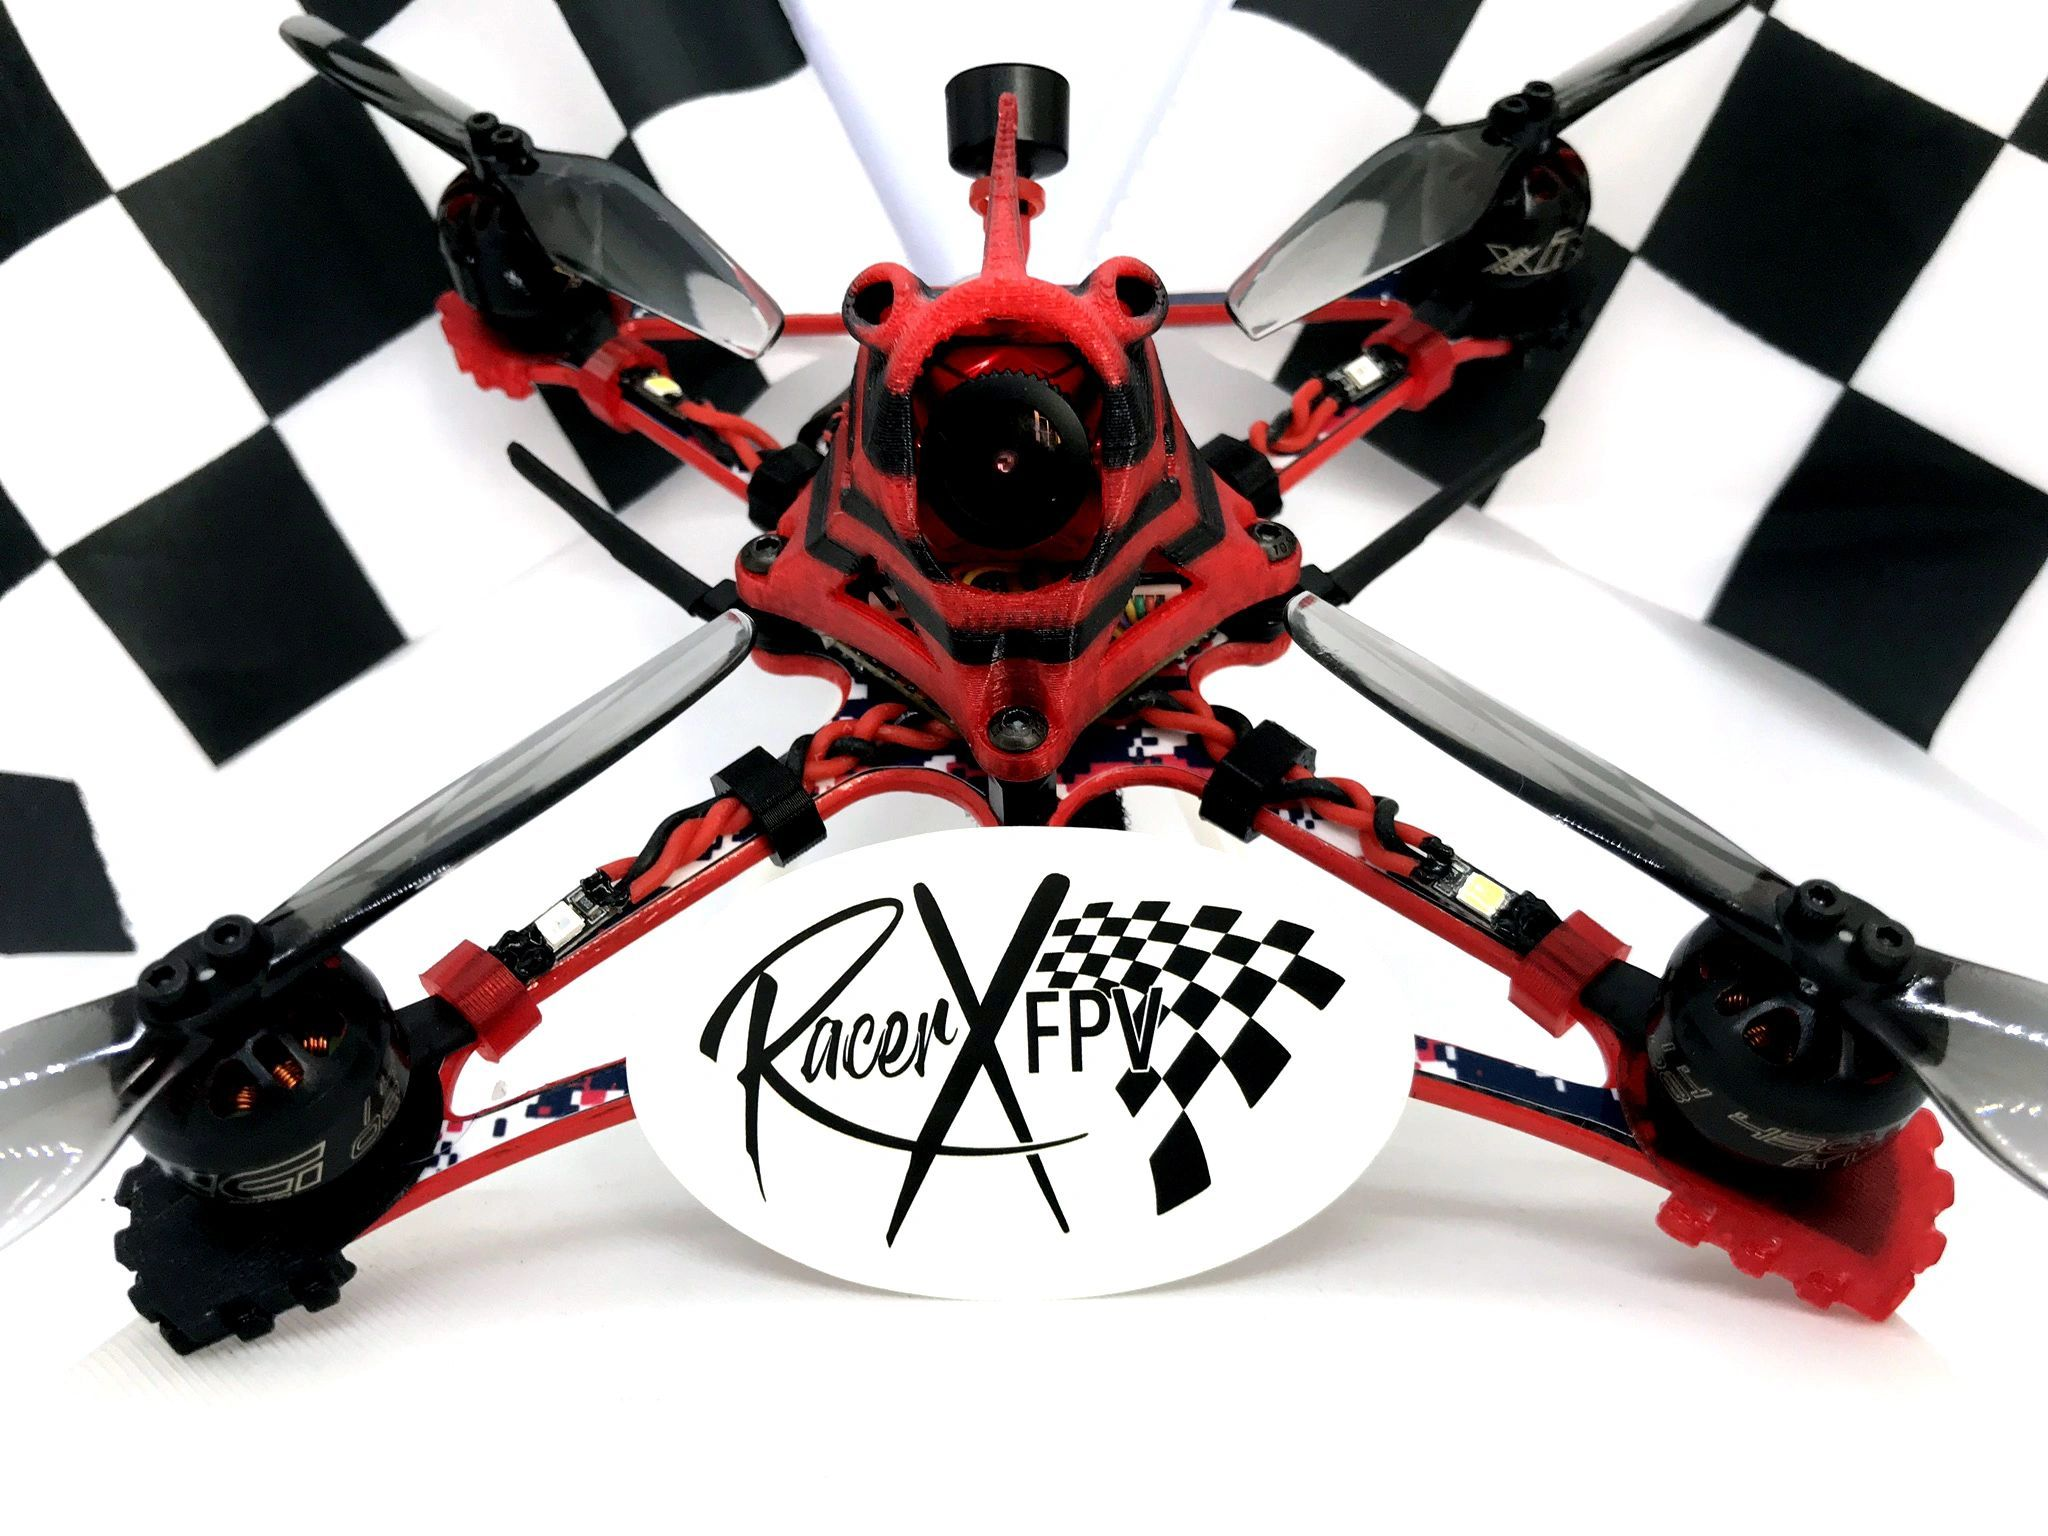 TWIG MUTANT 4 Frame Kit RacerXFPV